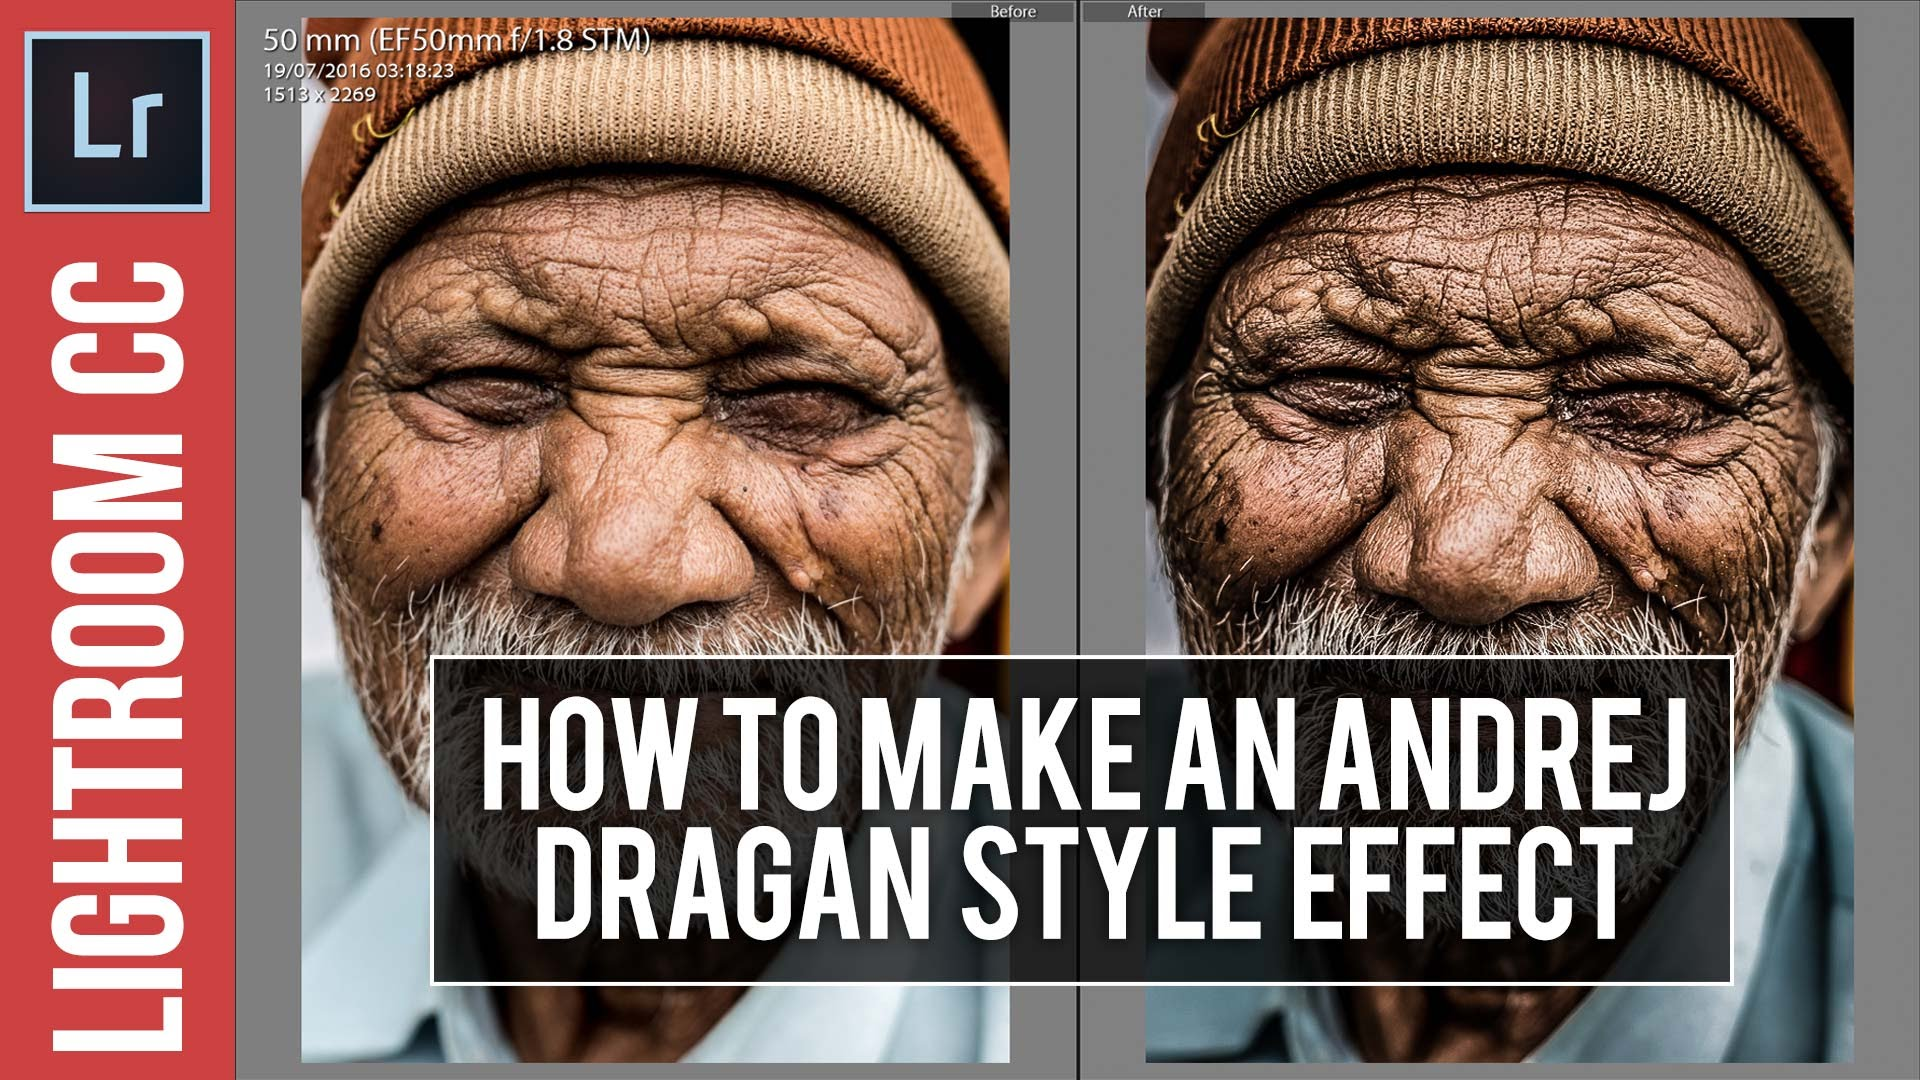 Super High Contrast Dragan Style Tutorial for Lightroom – Free Preset Included